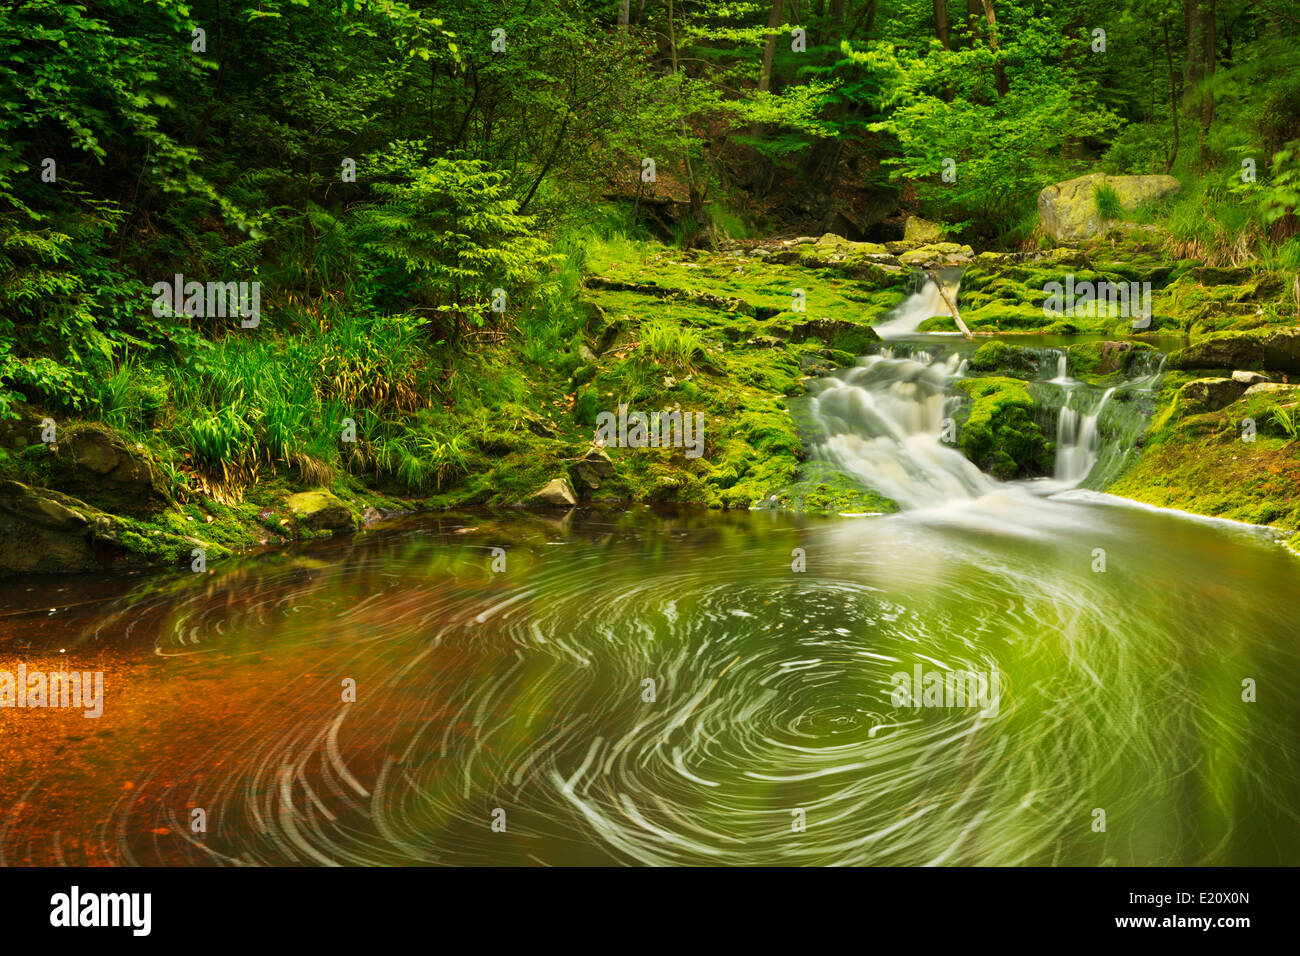 A small waterfall in lush forest in the Ardennes, Belgium. - Stock Image